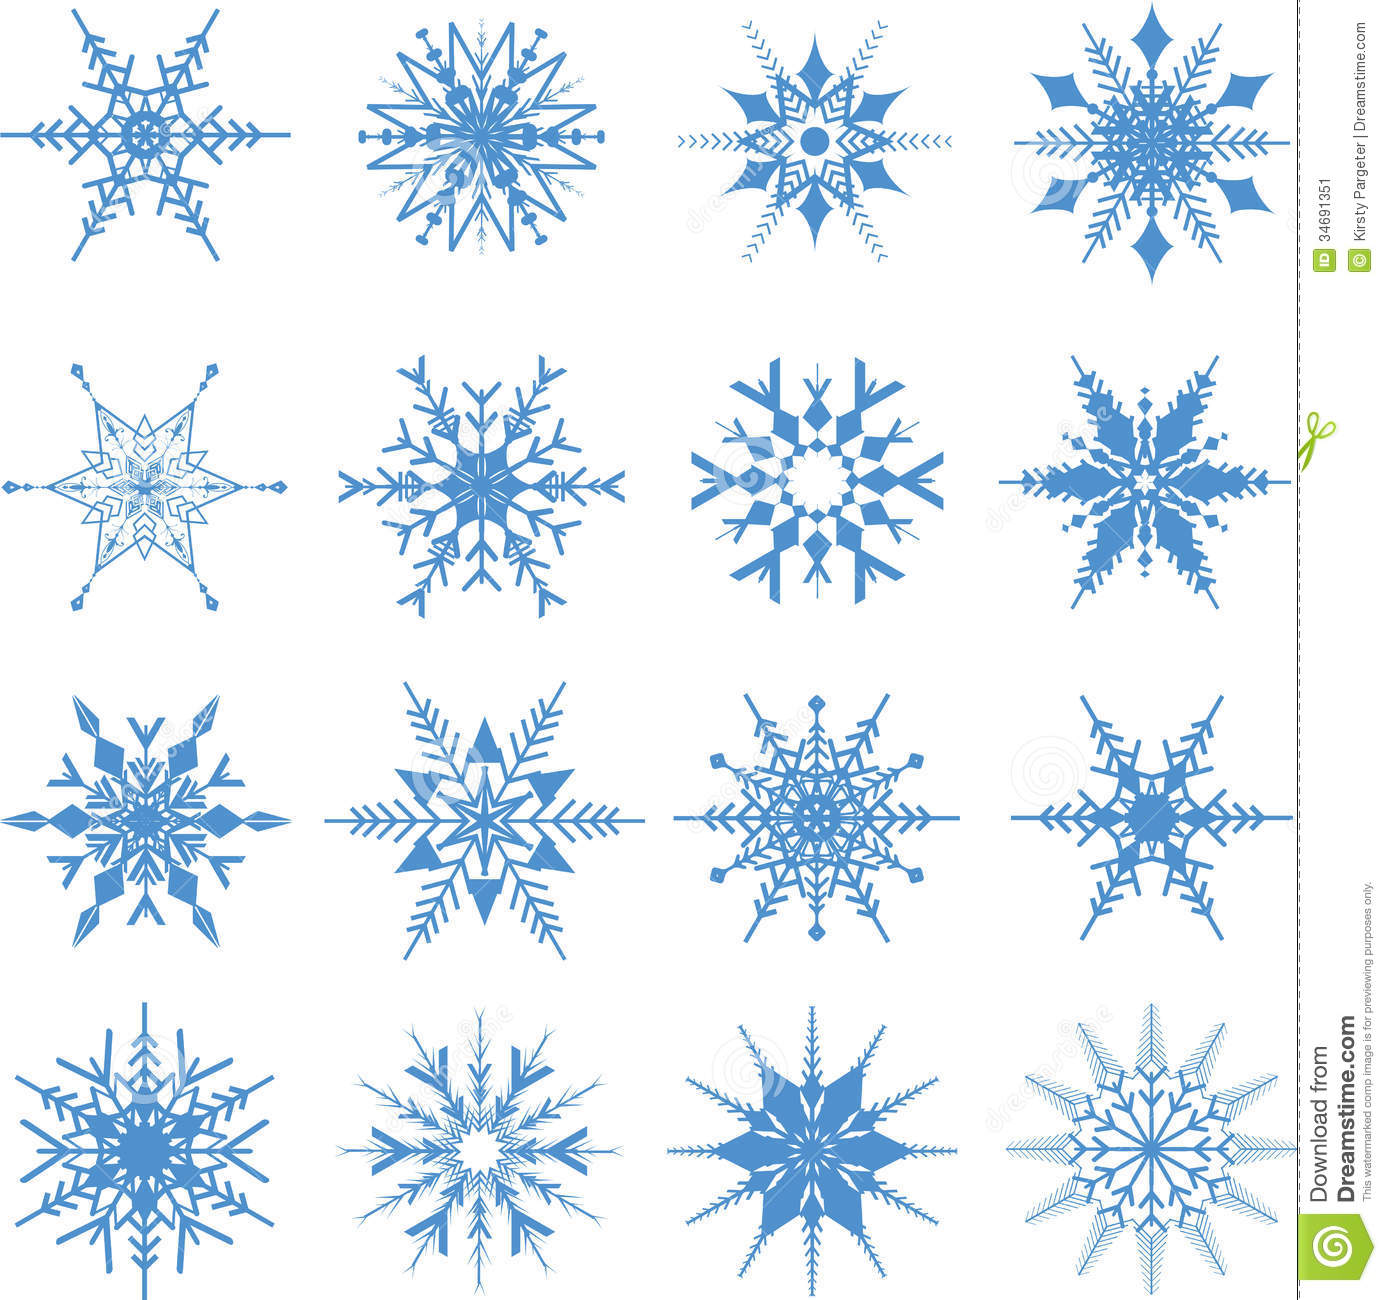 christmas snowflakes background stock vector illustration of eps10